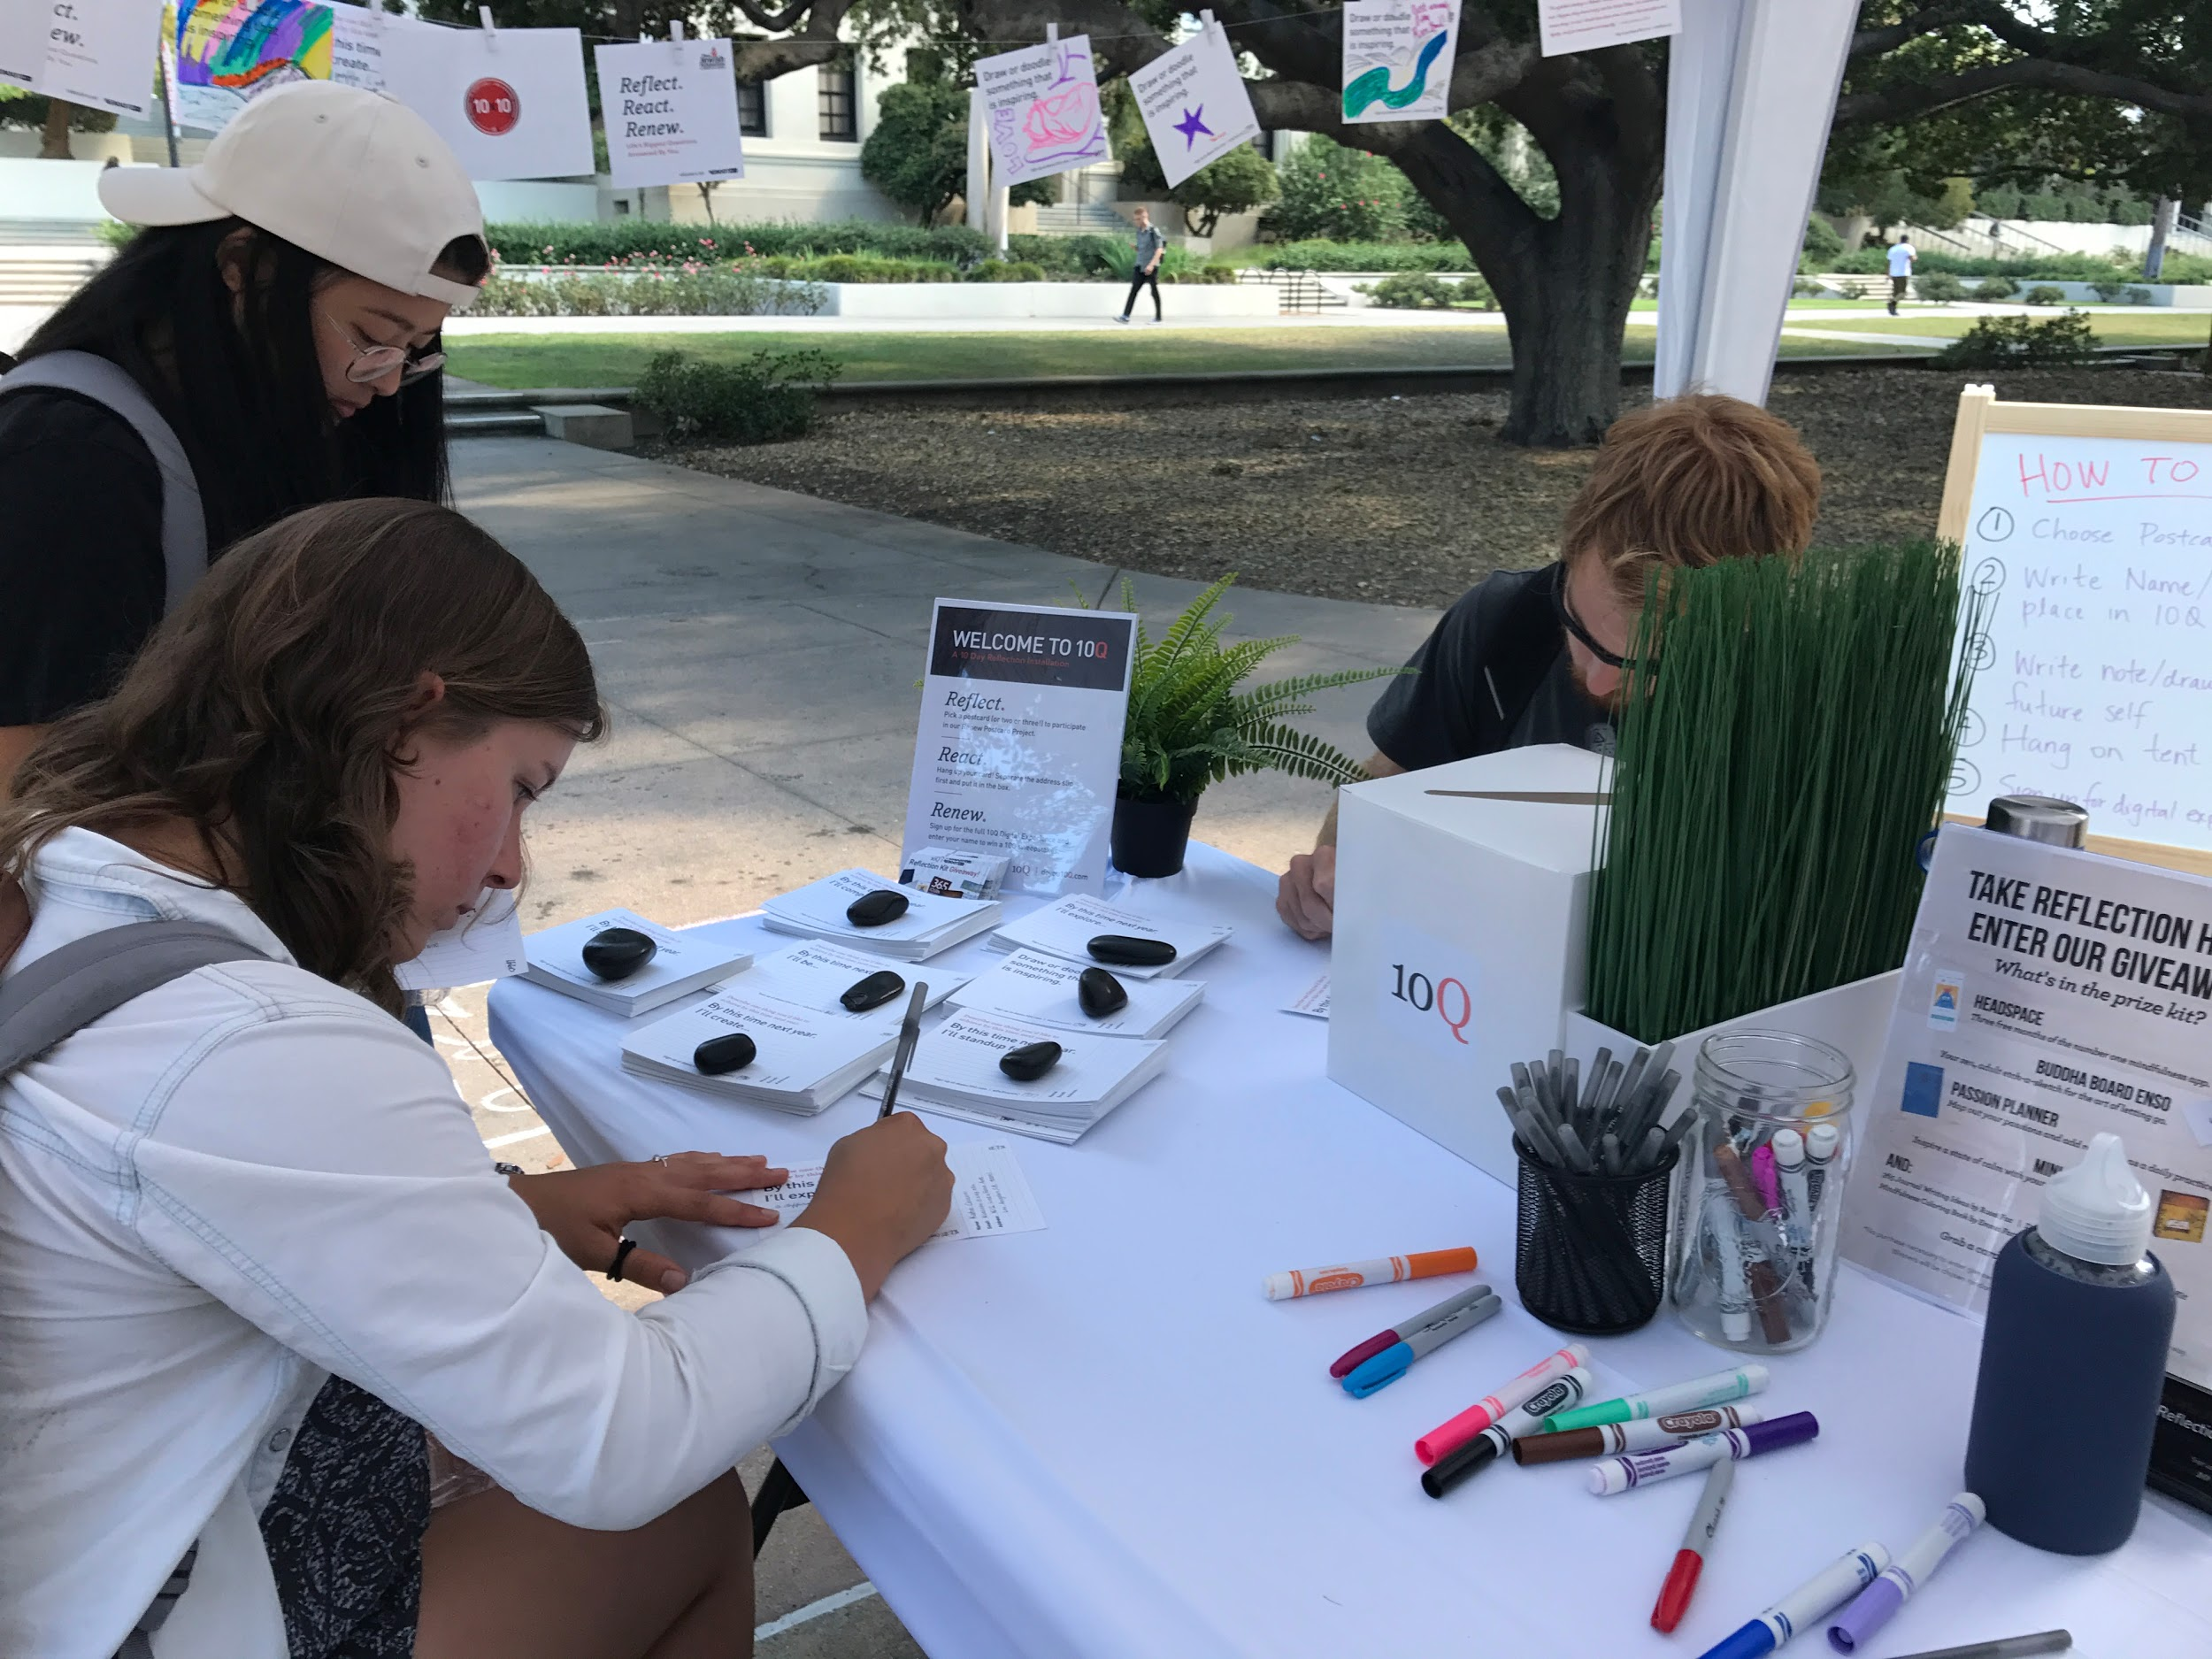 Students write personal reflections on postcards at a 10Q pop-up in Los Angeles.